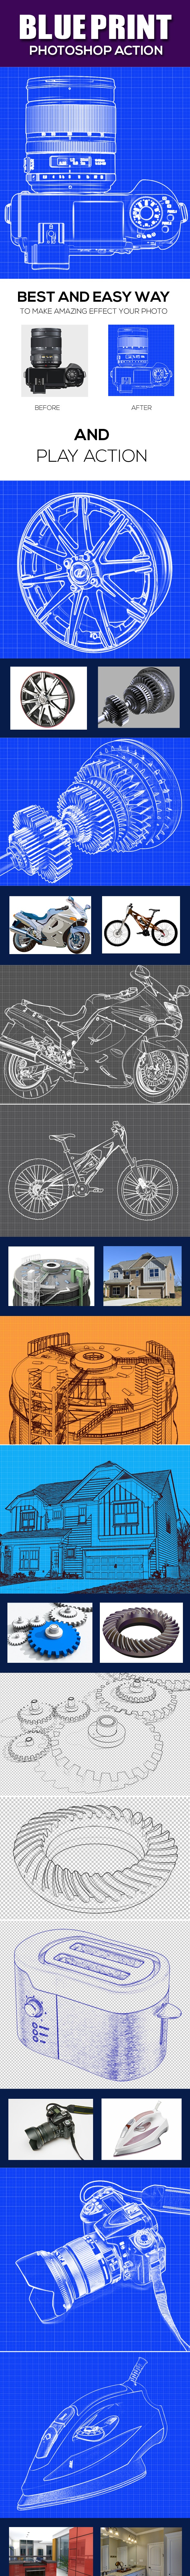 Blueprint Photoshop Action - Photo Effects Actions